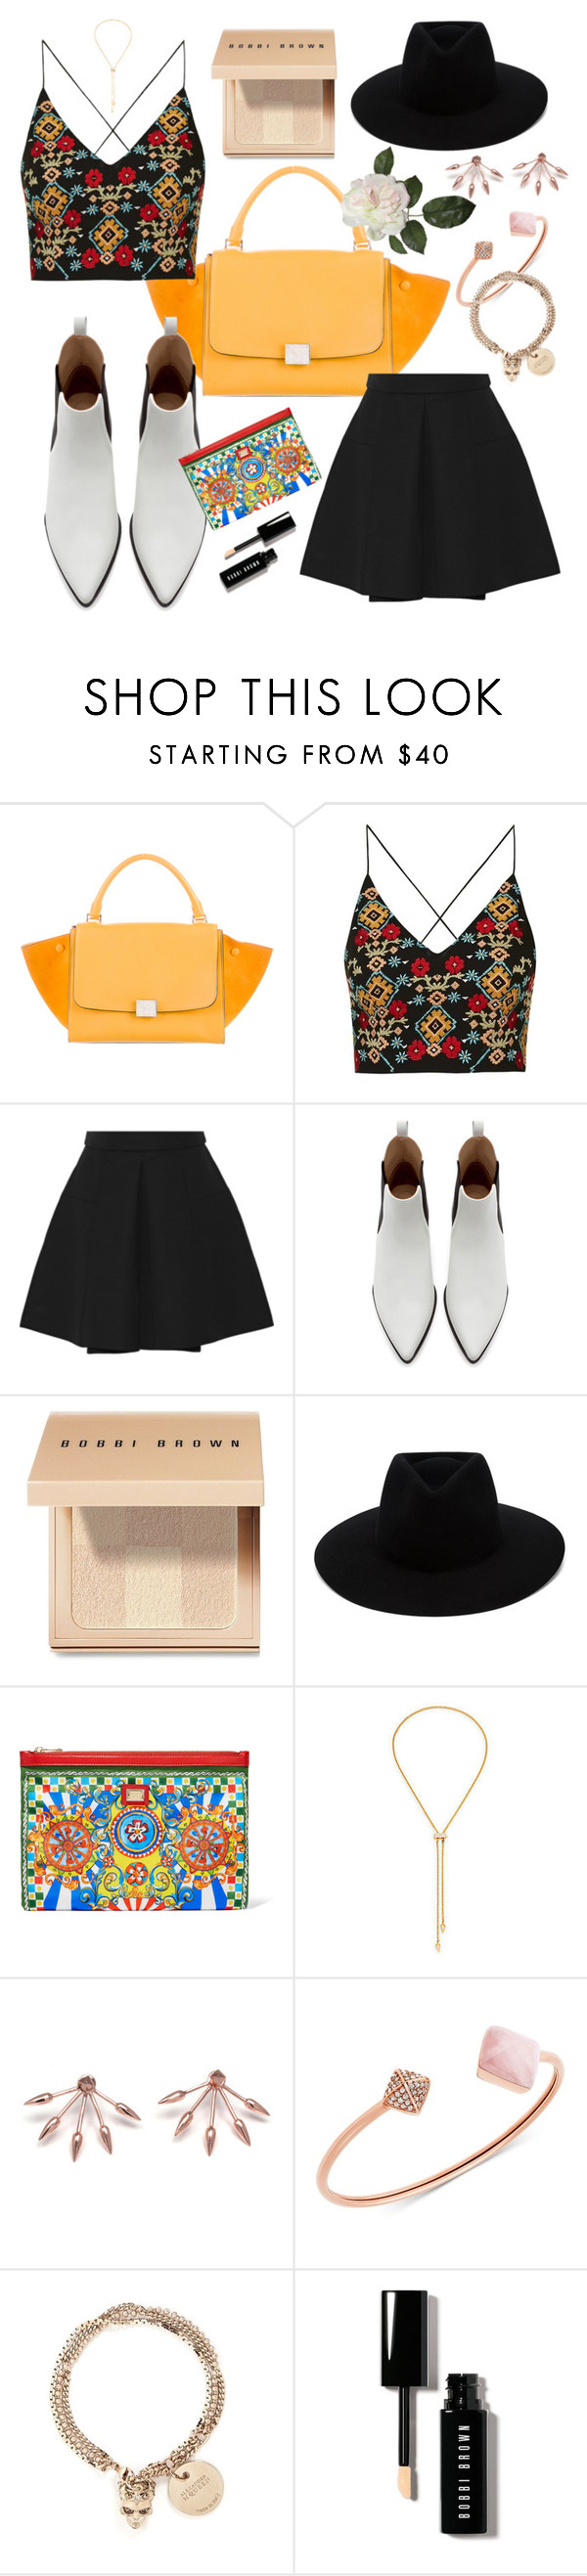 """Some Sunshine"" by vzaragoza ❤ liked on Polyvore featuring CÉLINE, Topshop, Alexander McQueen, Zara, Bobbi Brown Cosmetics, rag & bone, Dolce&Gabbana, Vita Fede, Pamela Love and Michael Kors"